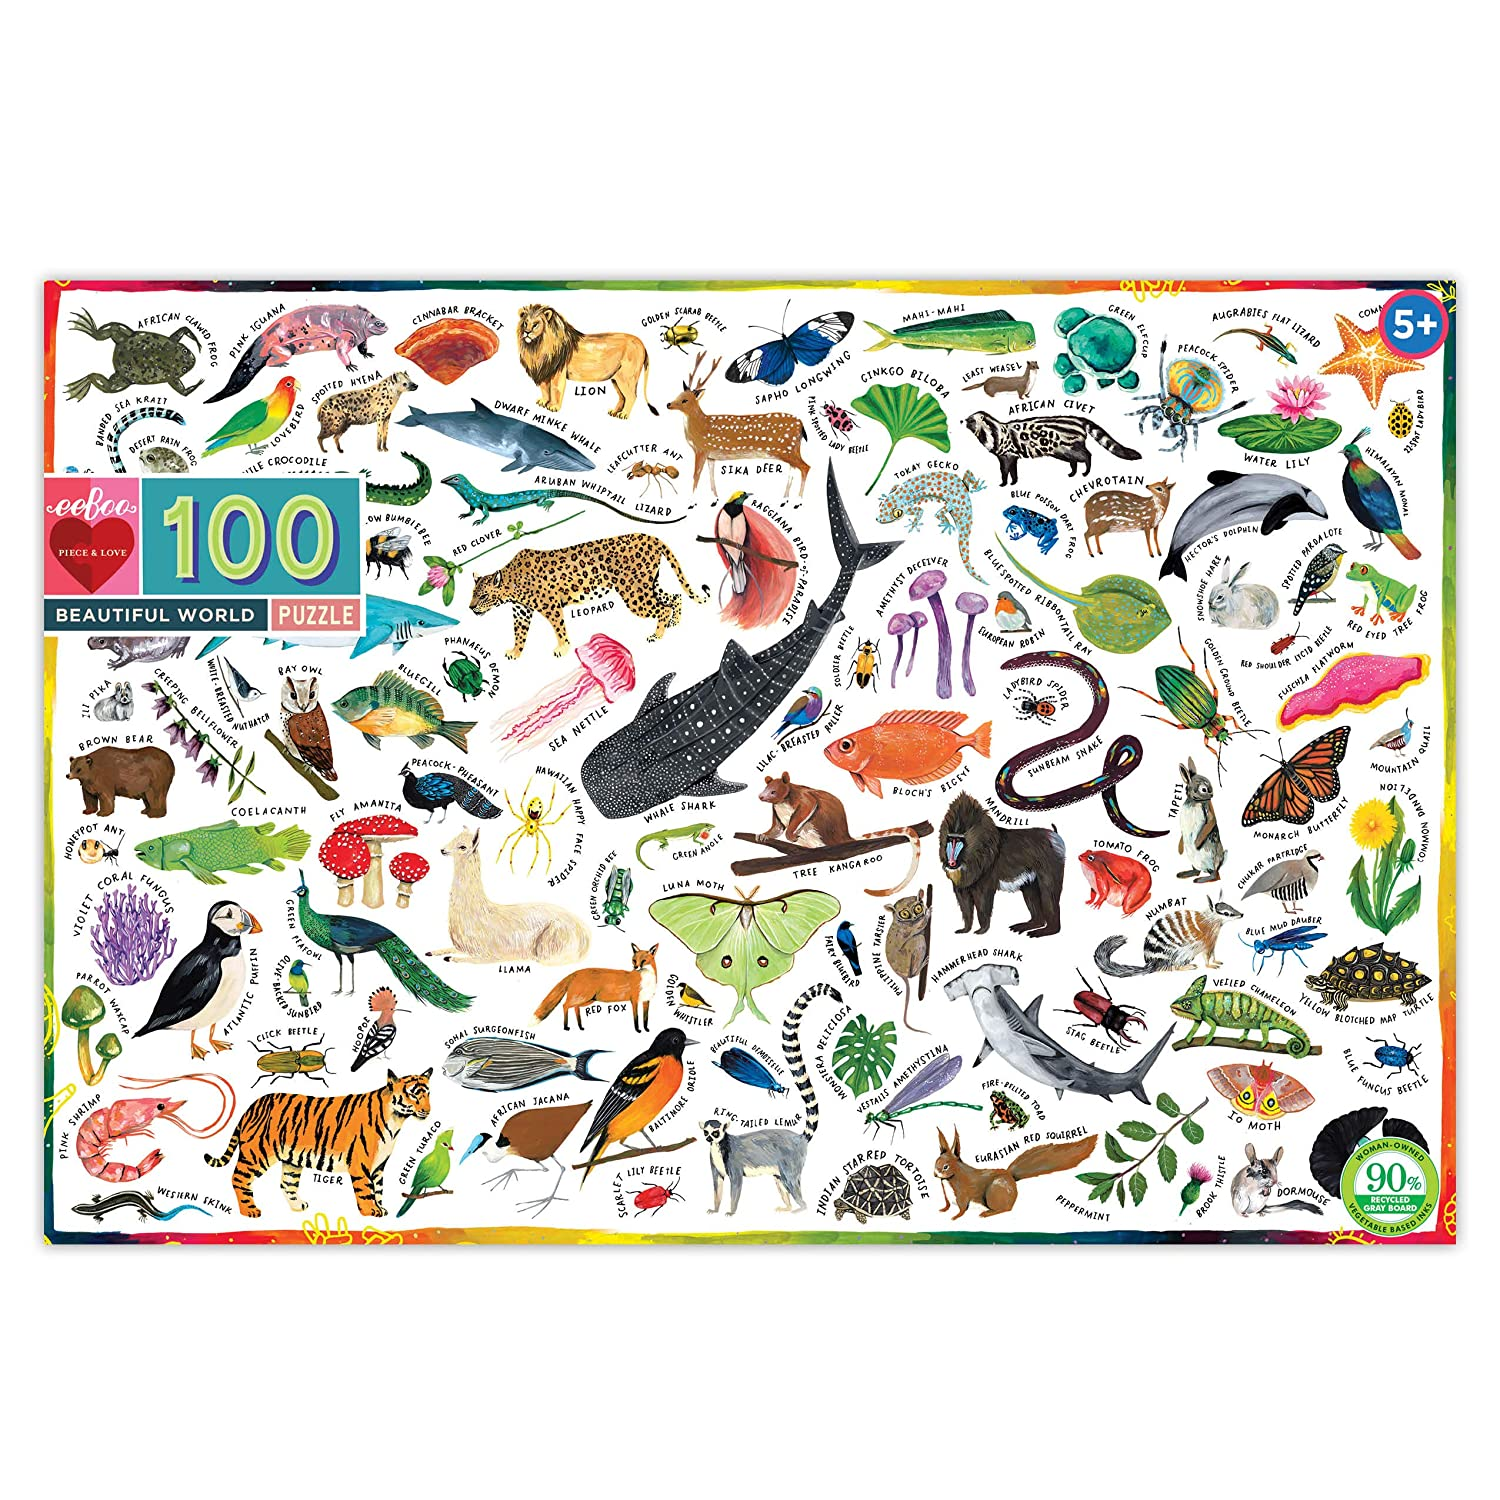 100 Pieces eeBoo Beautiful World Jigsaw Puzzle for Kids